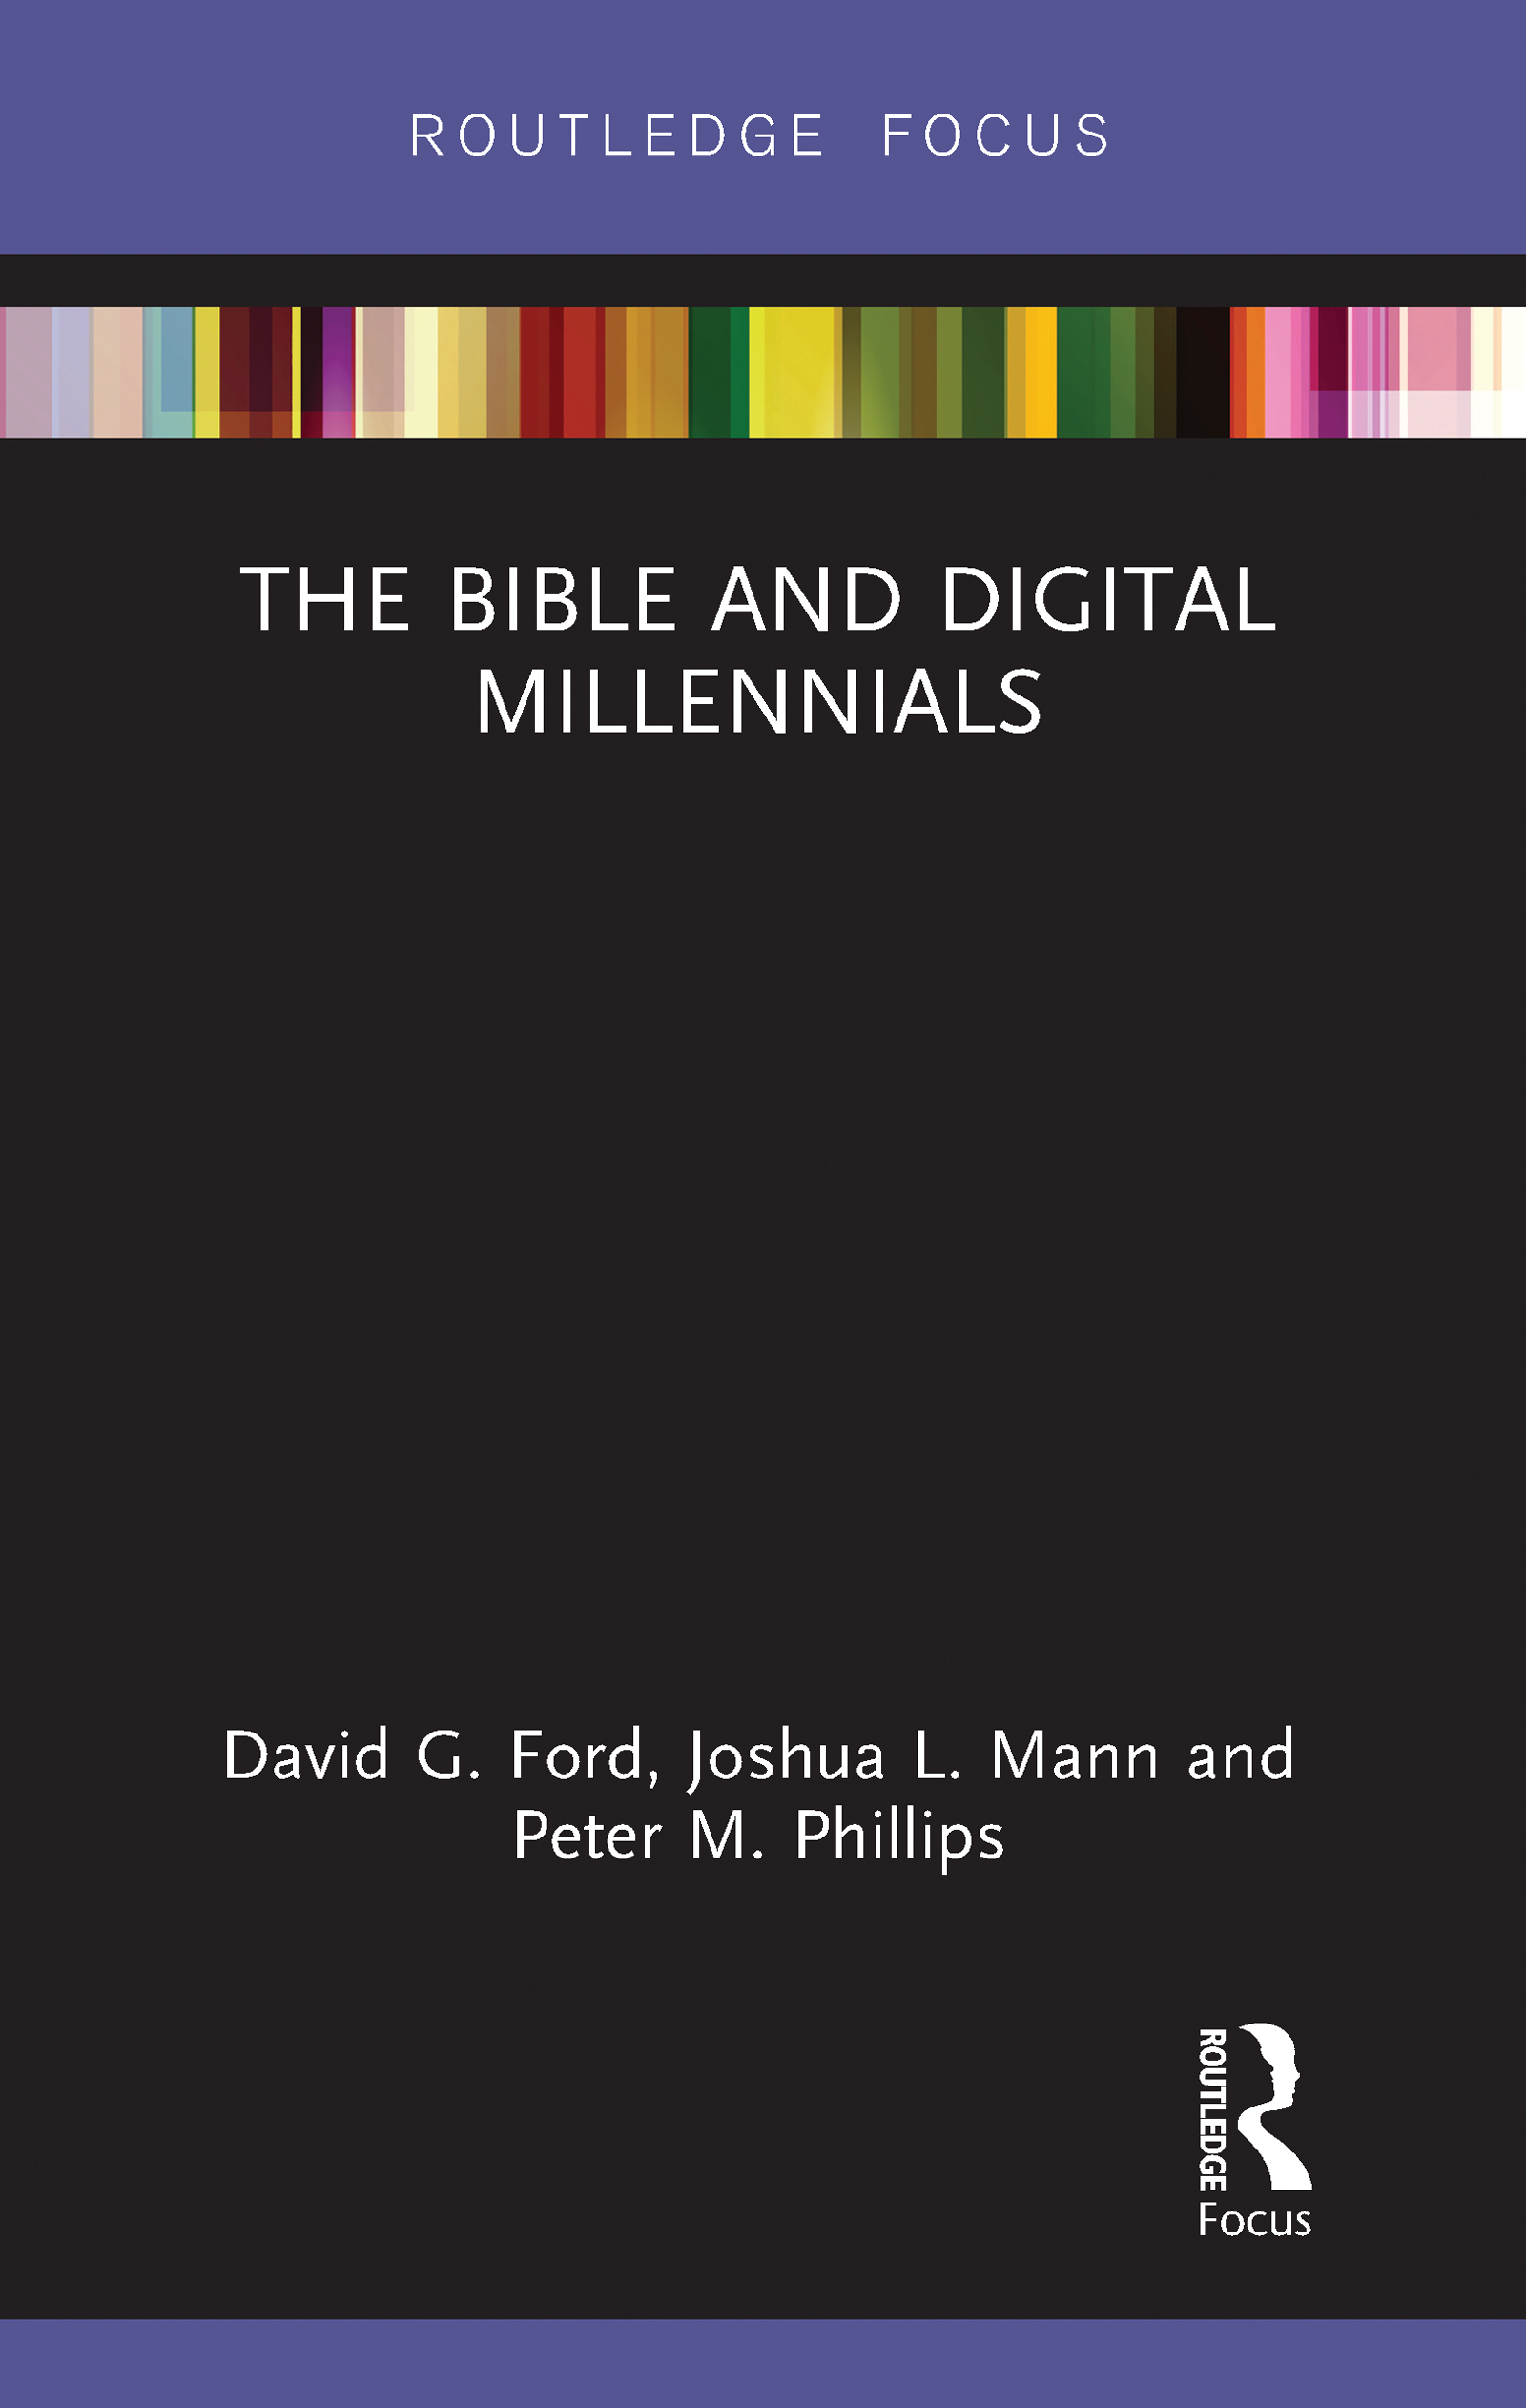 The Bible and Digital Millennials